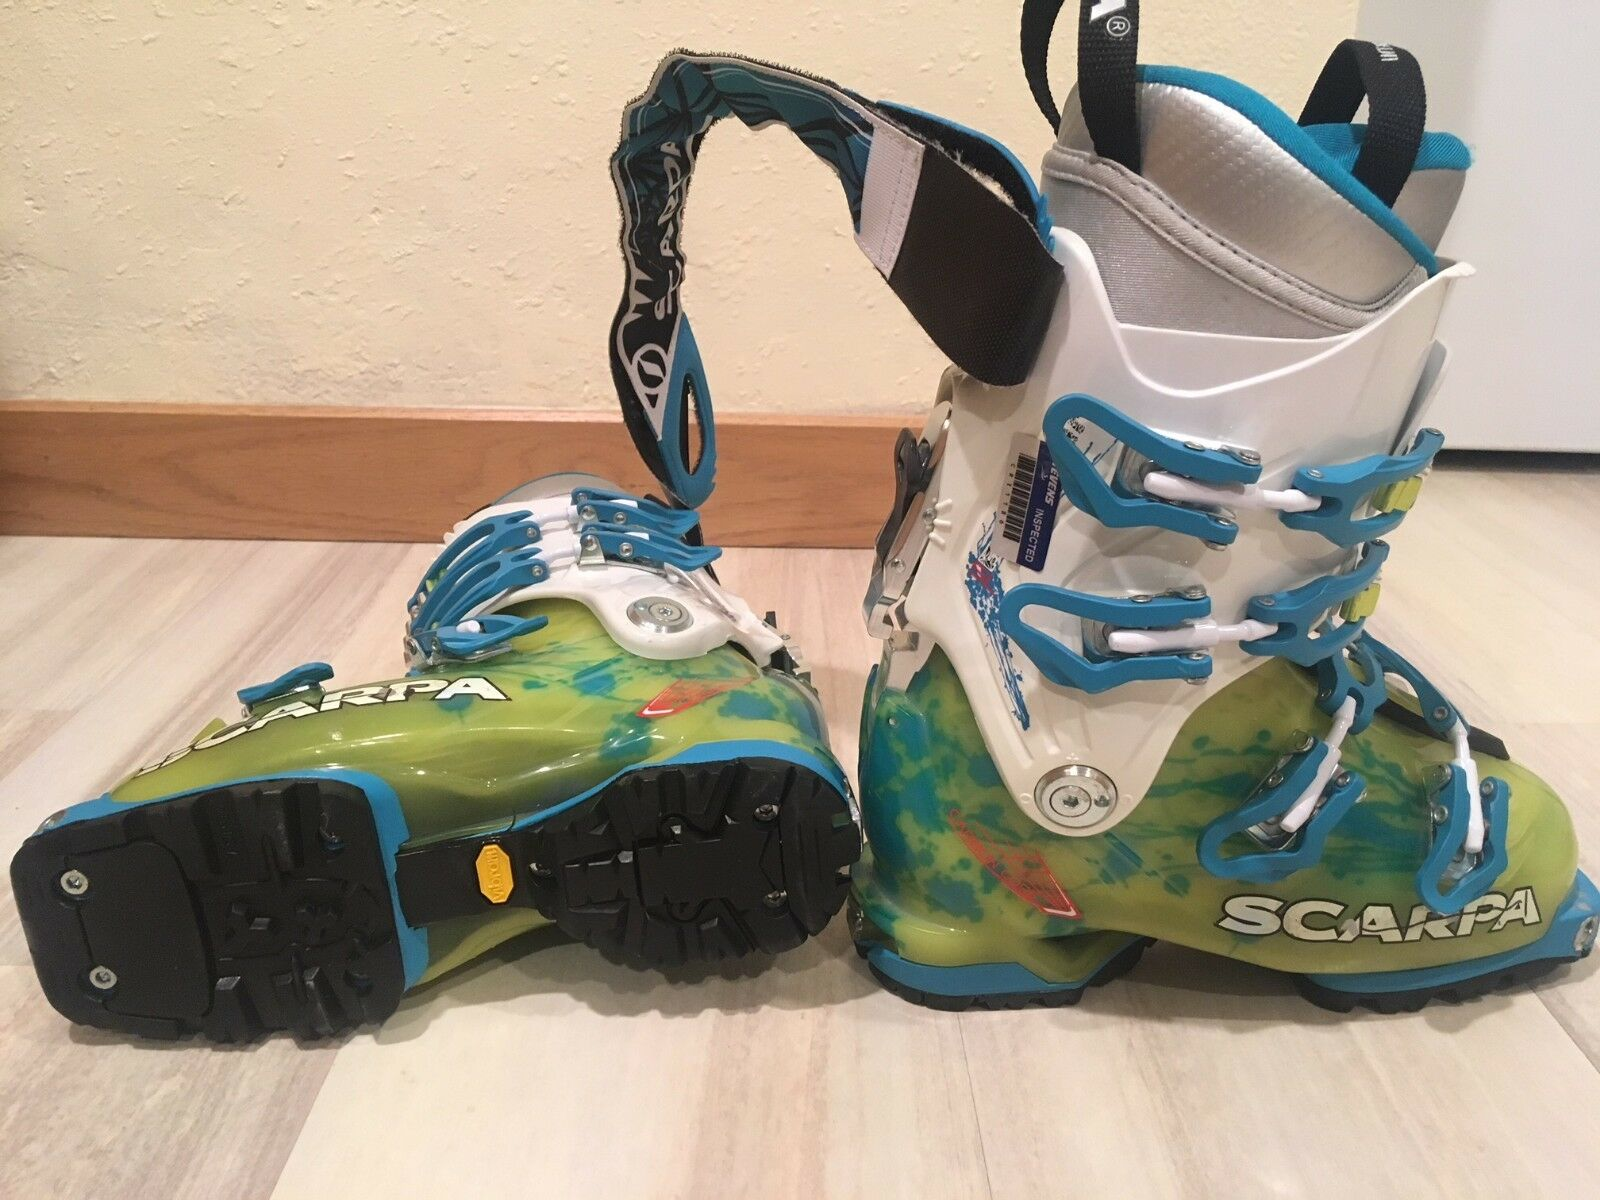 Women's Scarpa Freedom SL 120 AT Ski  Touring Boots SIZE 23 (US W's 6 7)  wholesape cheap